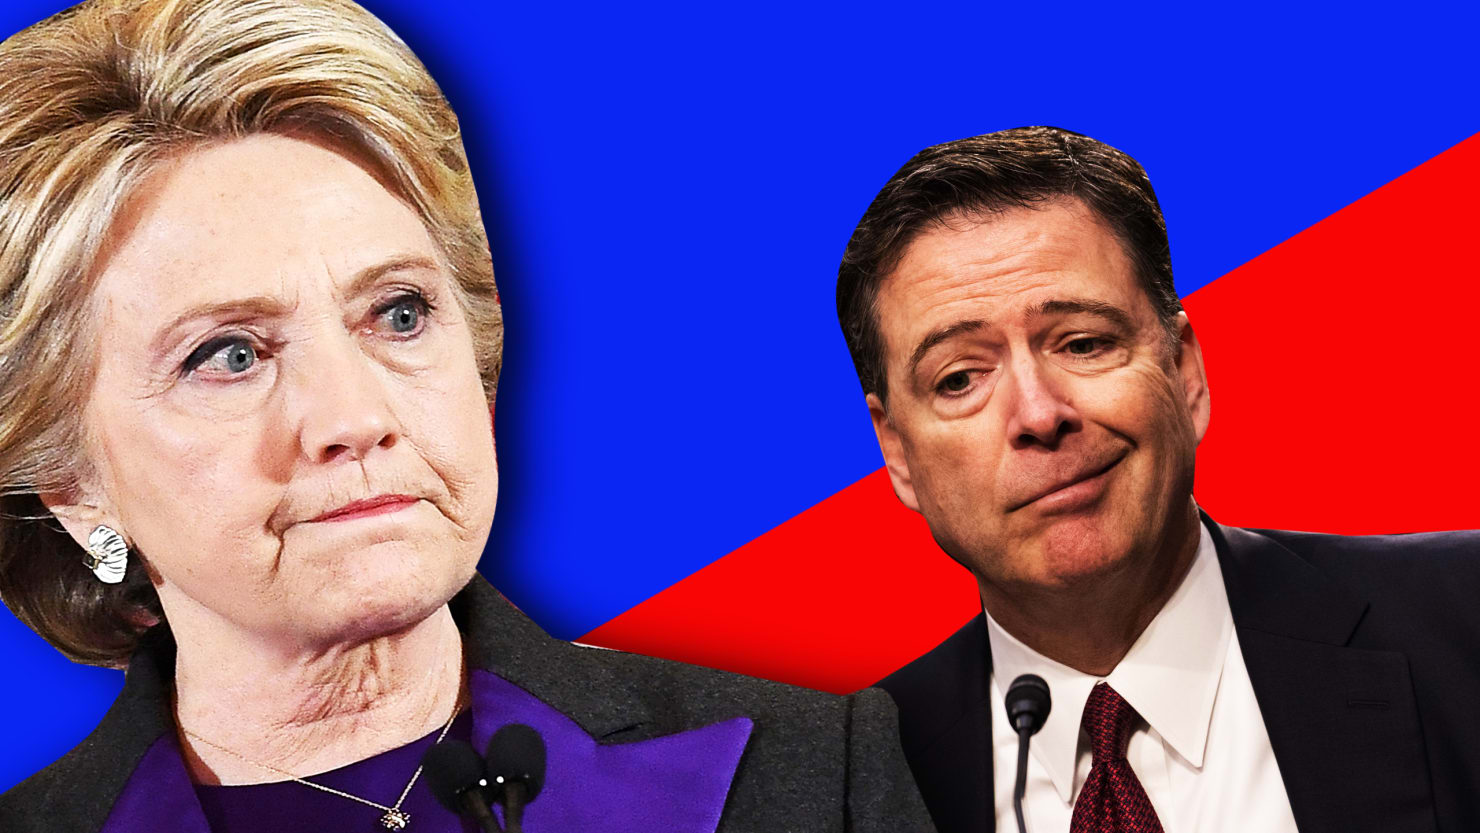 OH MY! Judge Napolitano UNCOVERED Hillary Like Never Before! – Comey Caught Red-Handed.